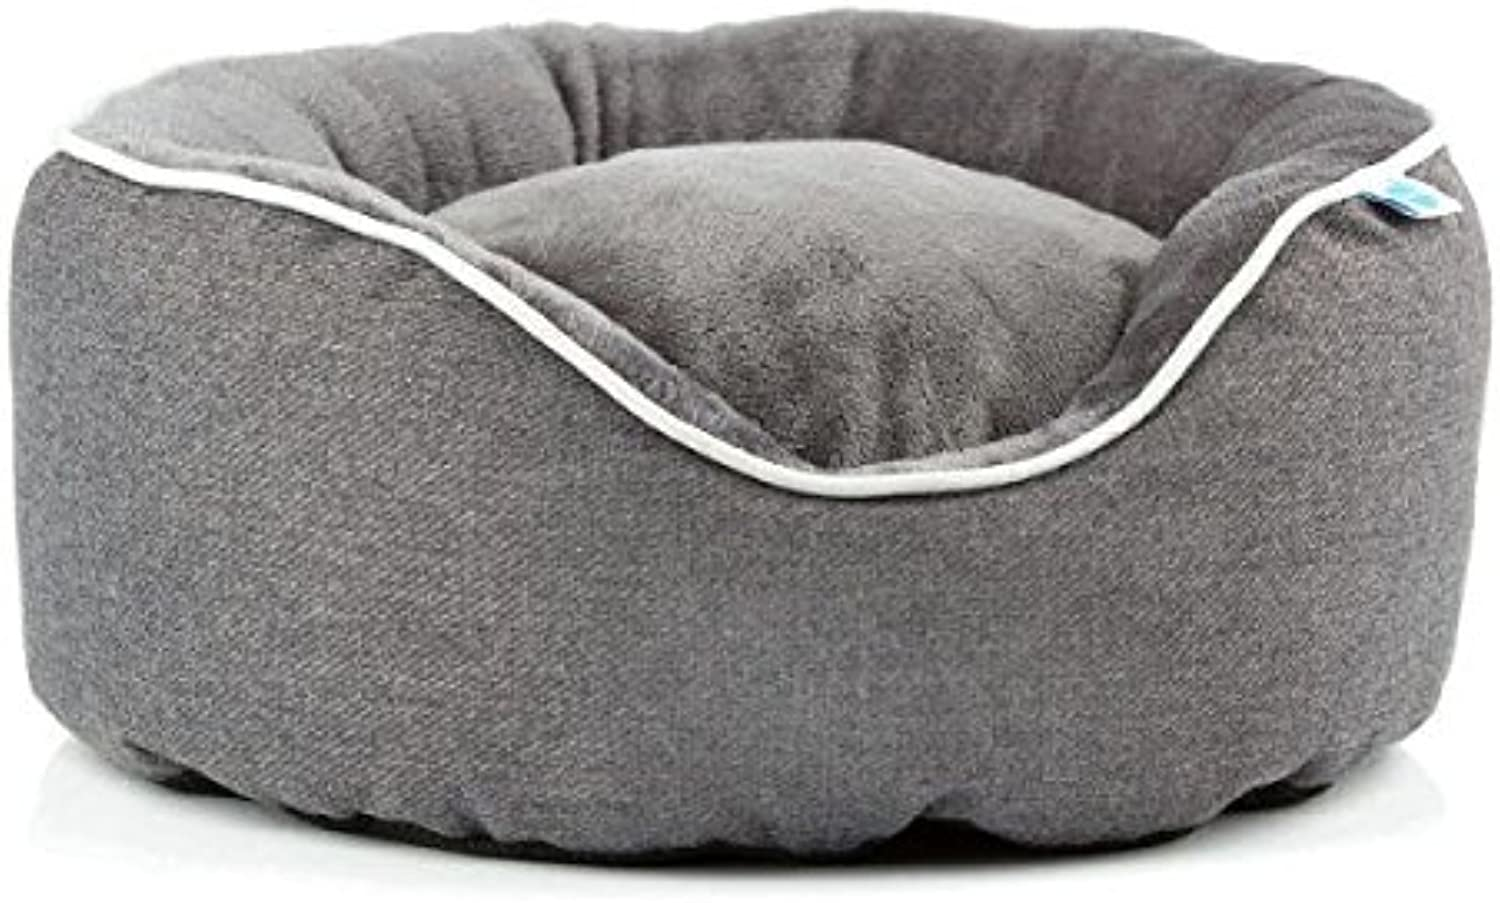 Messy Cats Studio Plus Collection, Bolster Bed